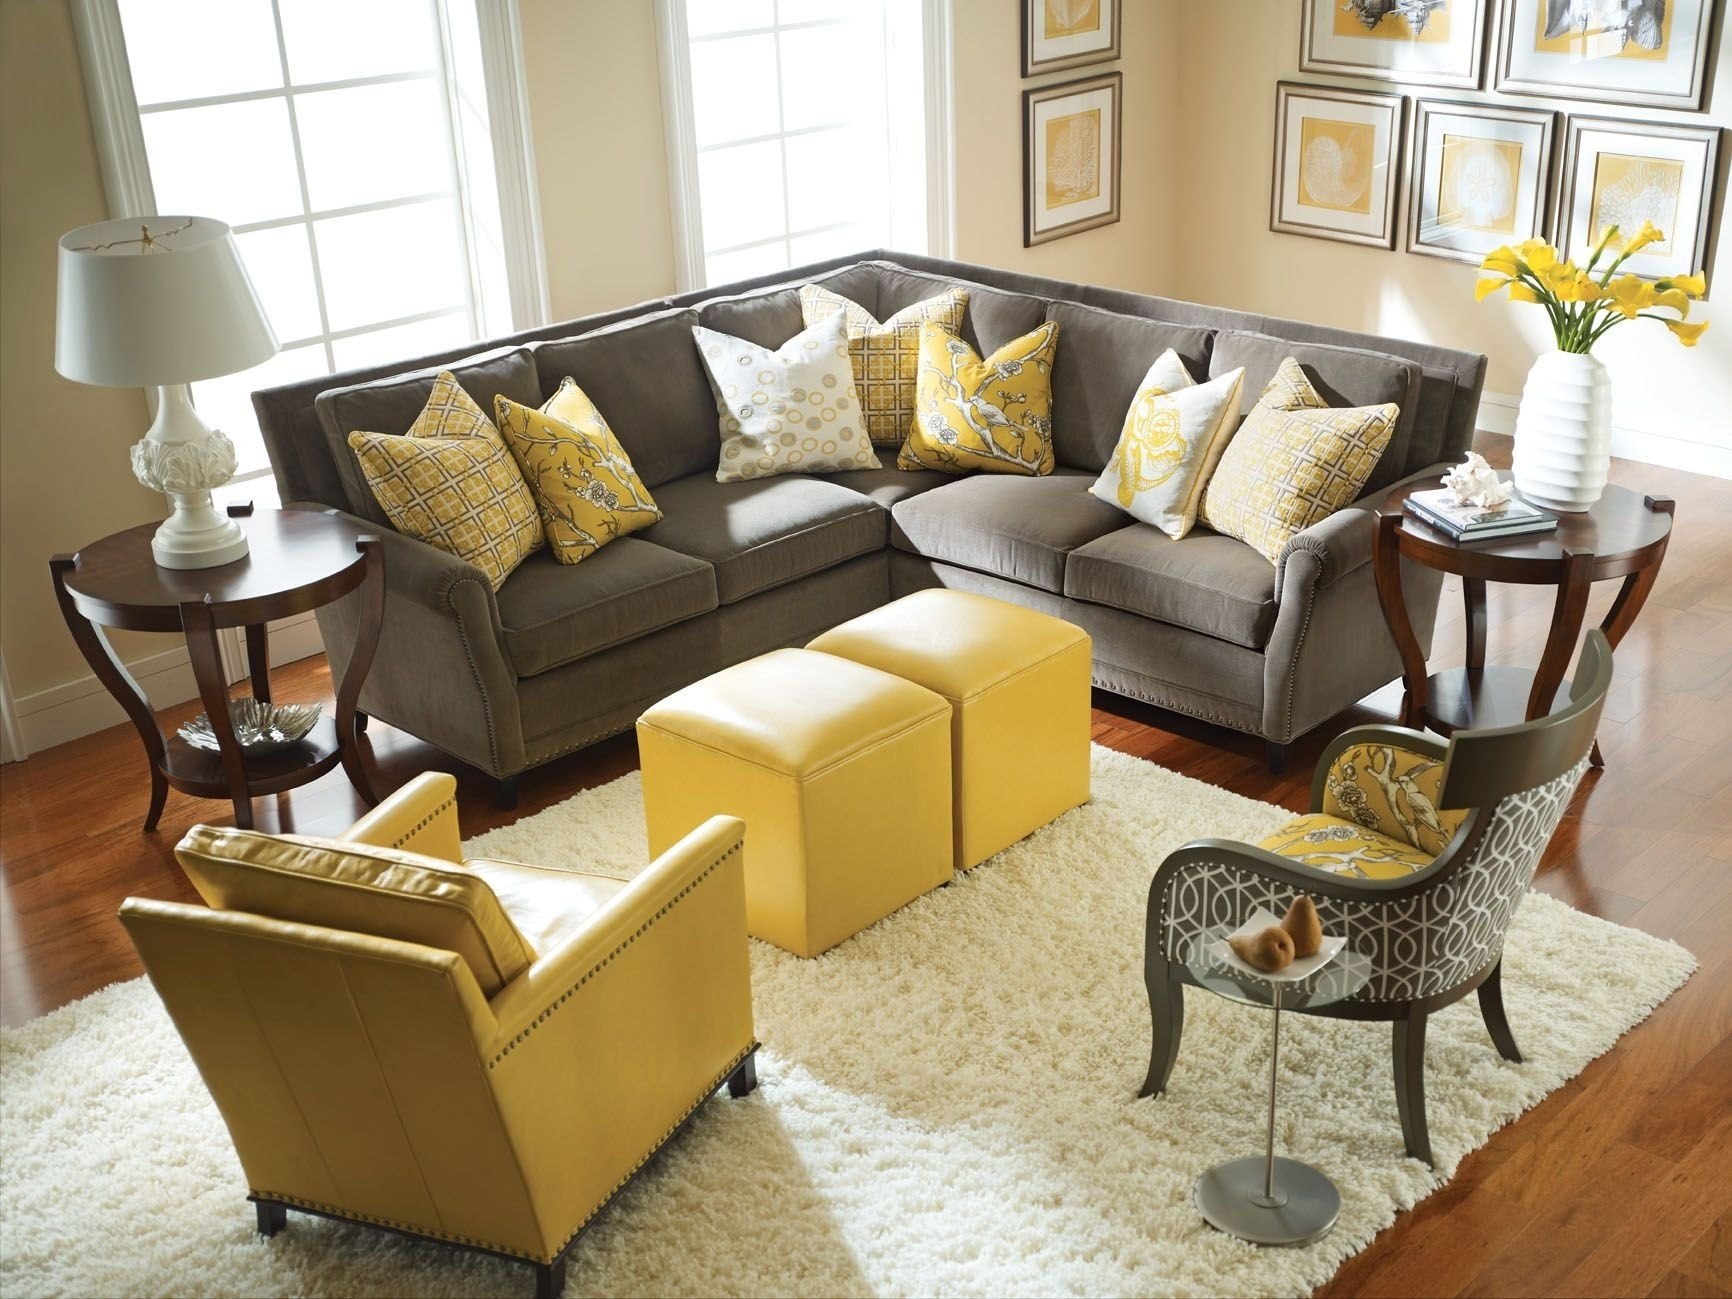 10 Beautiful Grey And Yellow Living Room Ideas yellow and gray rooms grey room grey living rooms and living room 2 2020